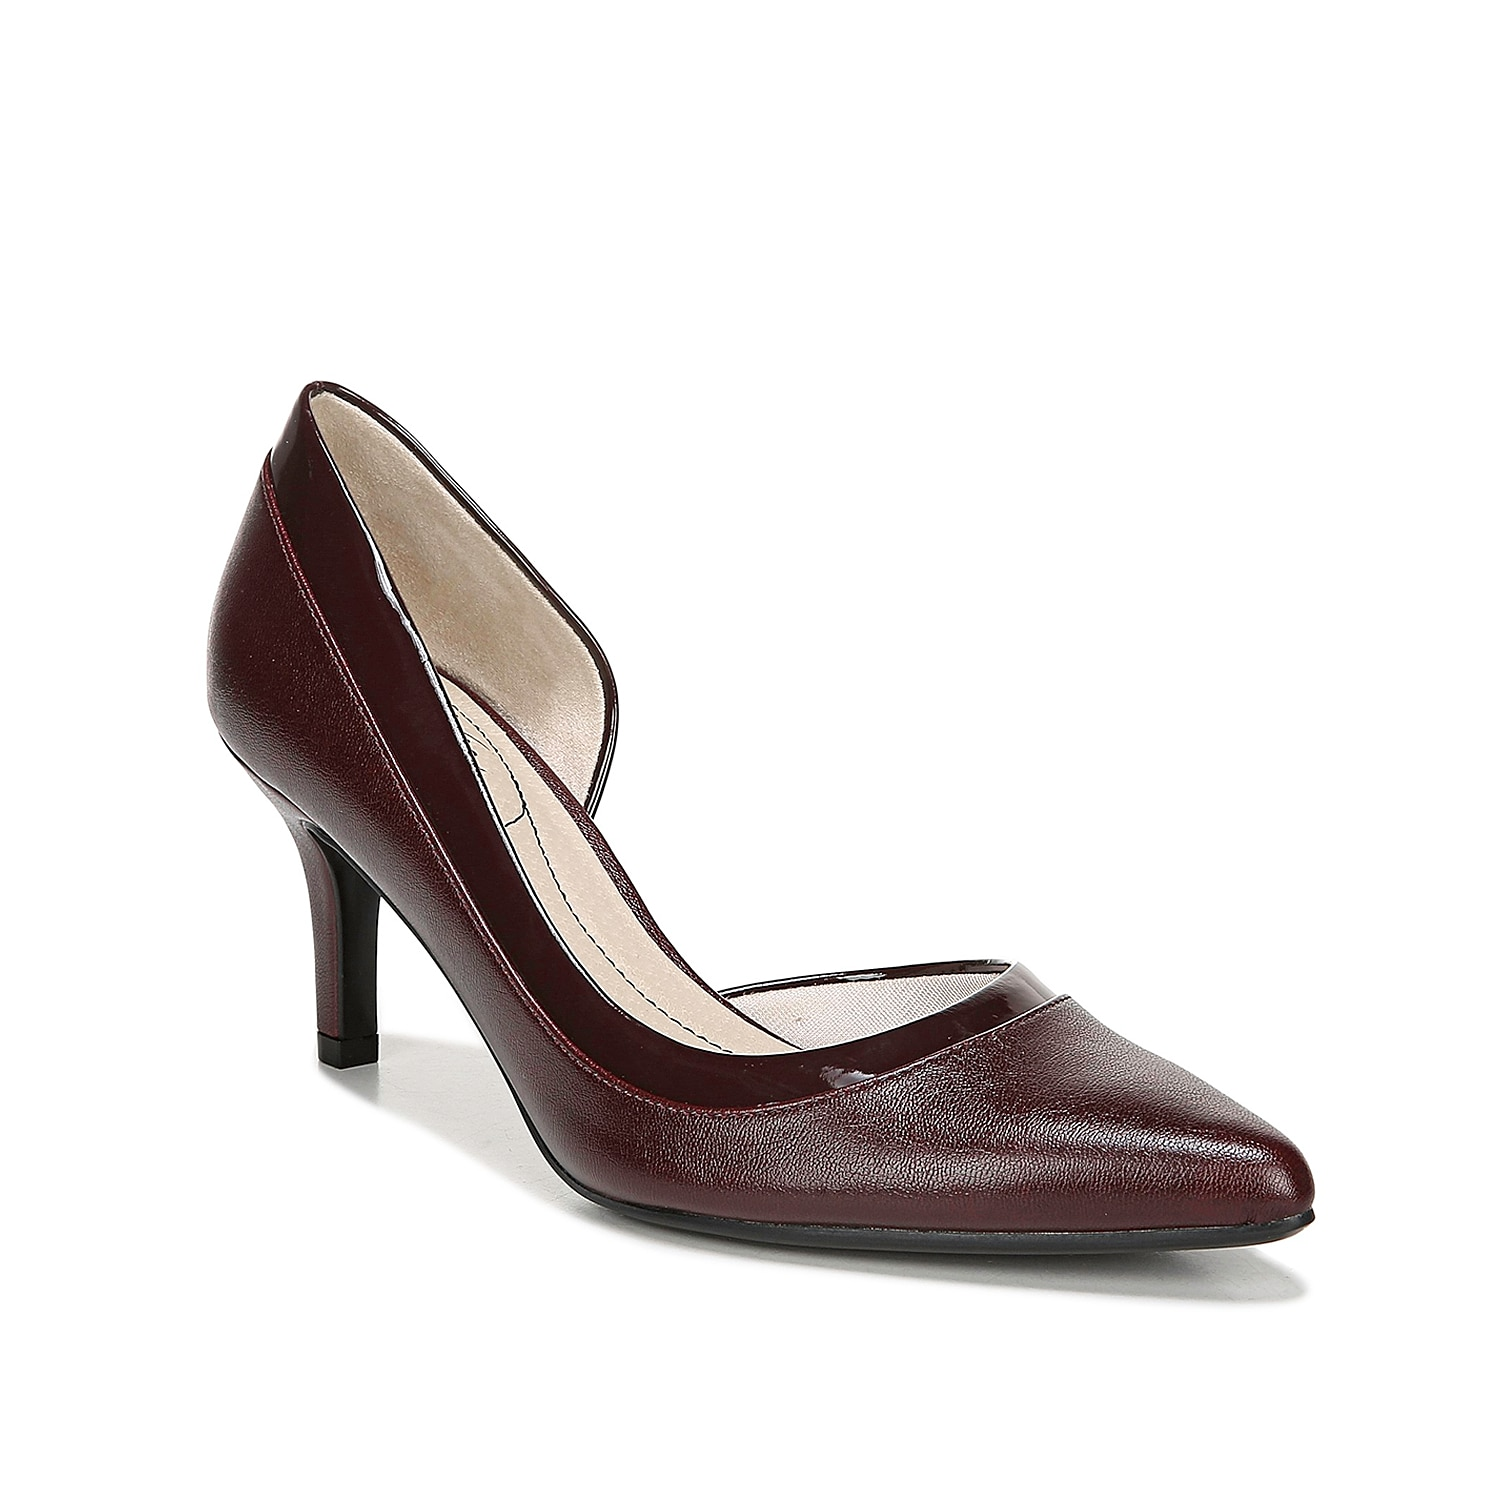 Refresh your sophisticated style with the Swann pump from LifeStride. A two-toned upper flaunts modern D\\\'Orsay styling for some added drama.